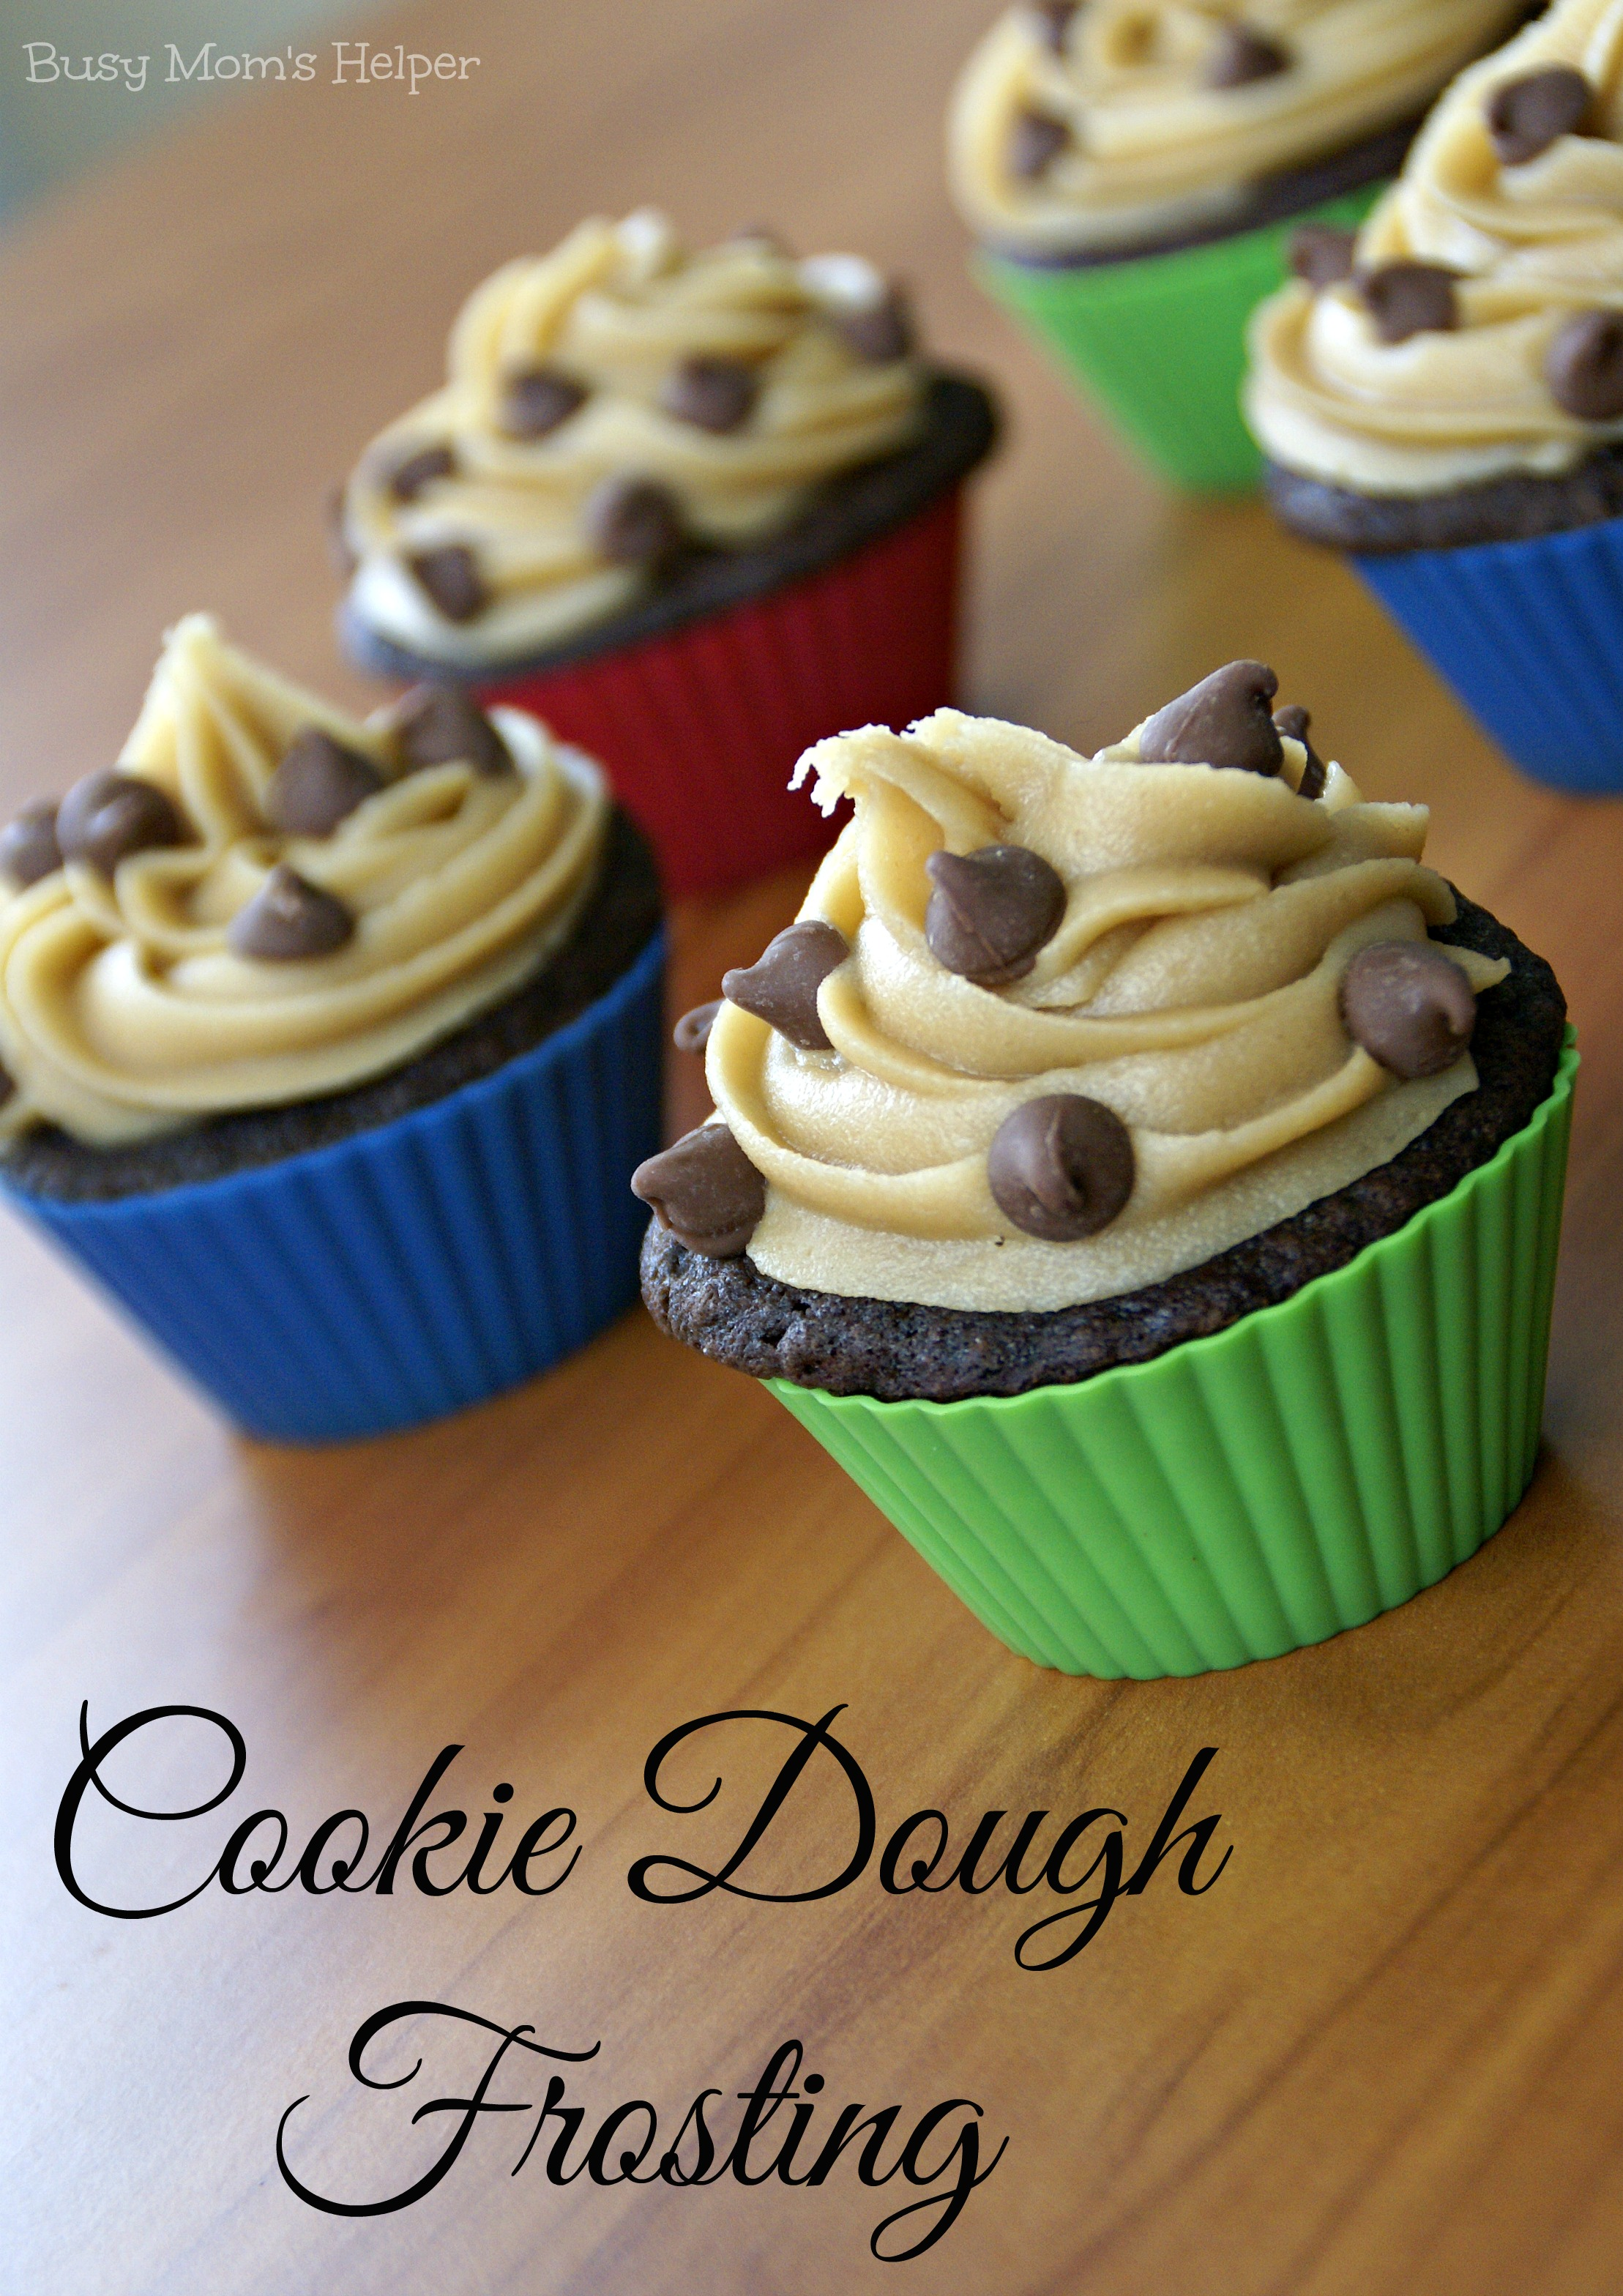 cookie dough icing